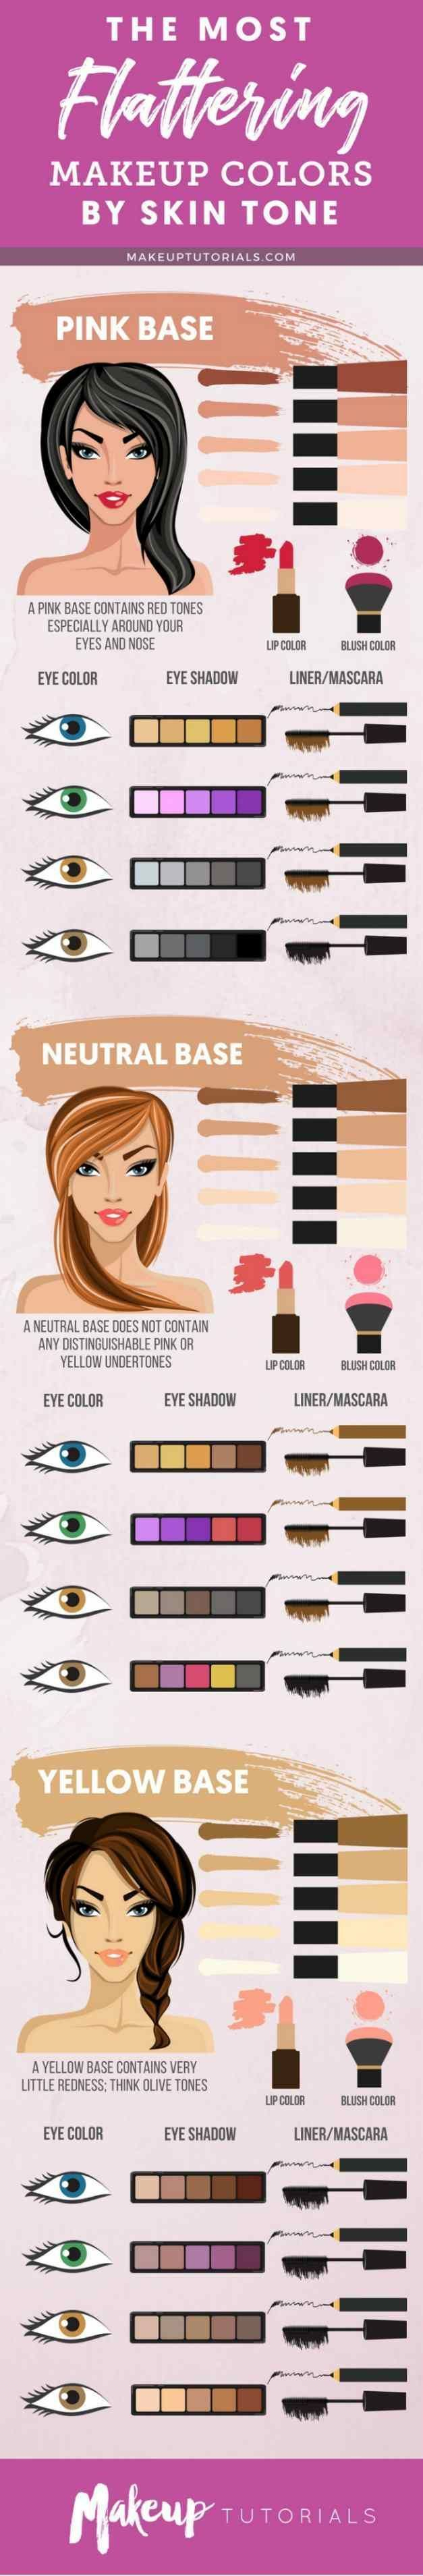 Want to look fresh and fab? Go back to the basics of makeup colors with our helpful makeup guide. Find out what colors flatter your skin the most here! | The Most Flattering Makeup Colors by Skin Tone | Makeup Guide | Makeup Colors By Skin Tone